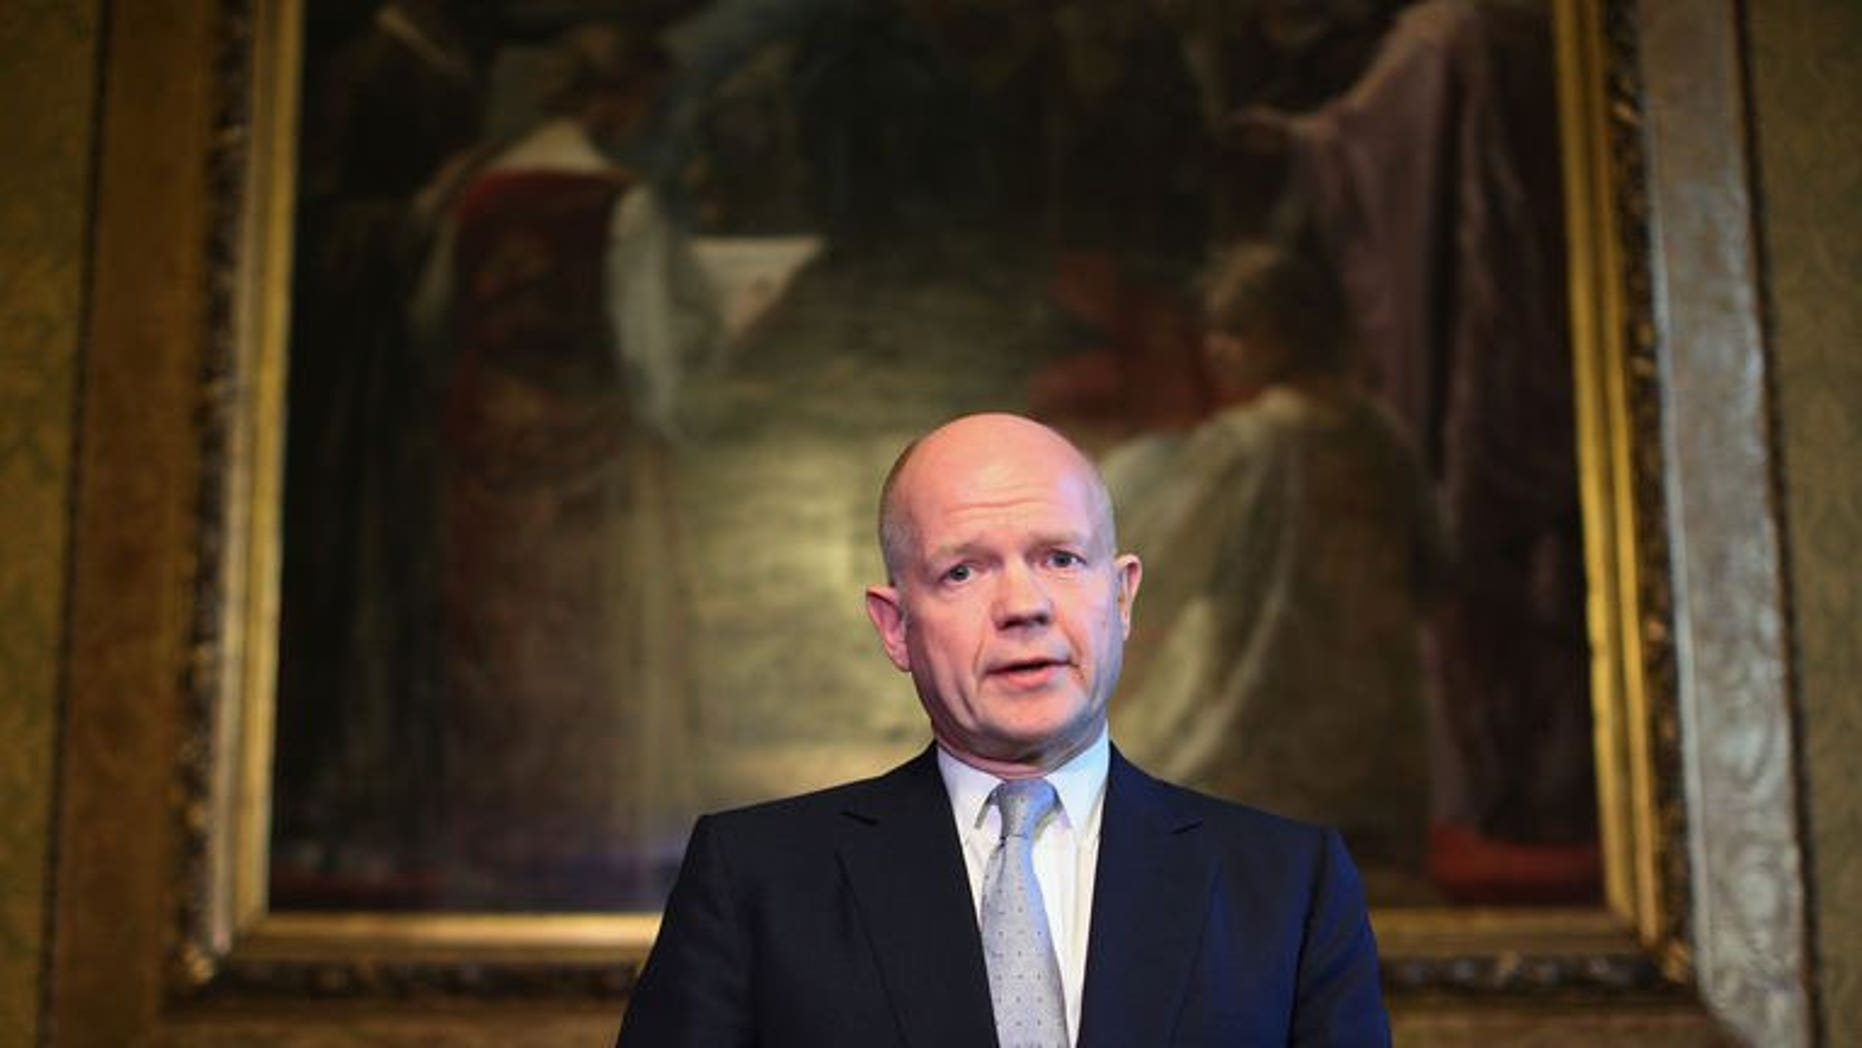 British Foreign Secretary William Hague addresses the media in the Foreign and Commonwealth Office on September 16, 2013 in London.